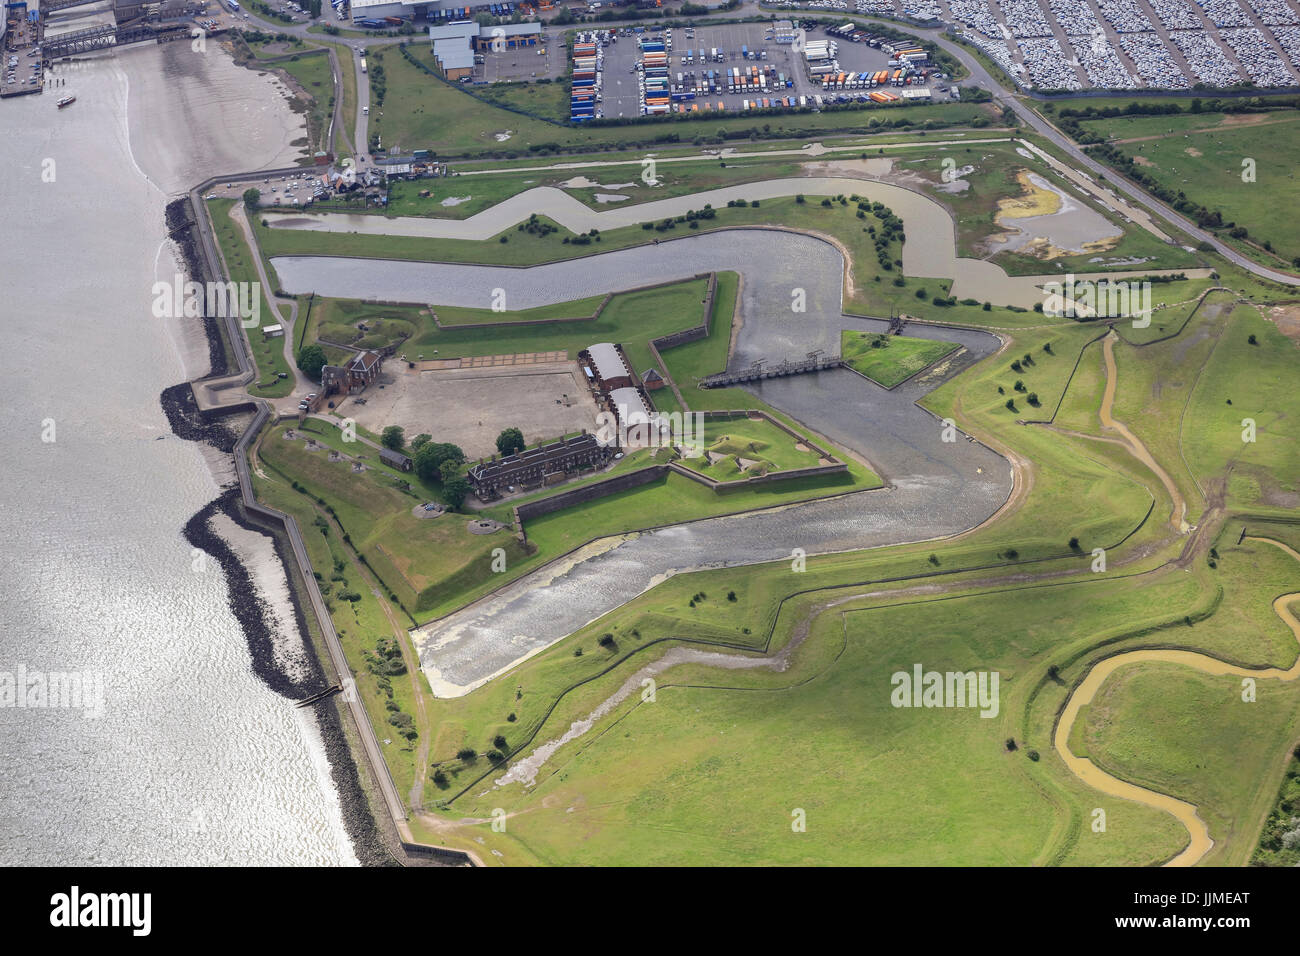 An aerial view of Tilbury Fort on the River Thames - Stock Image